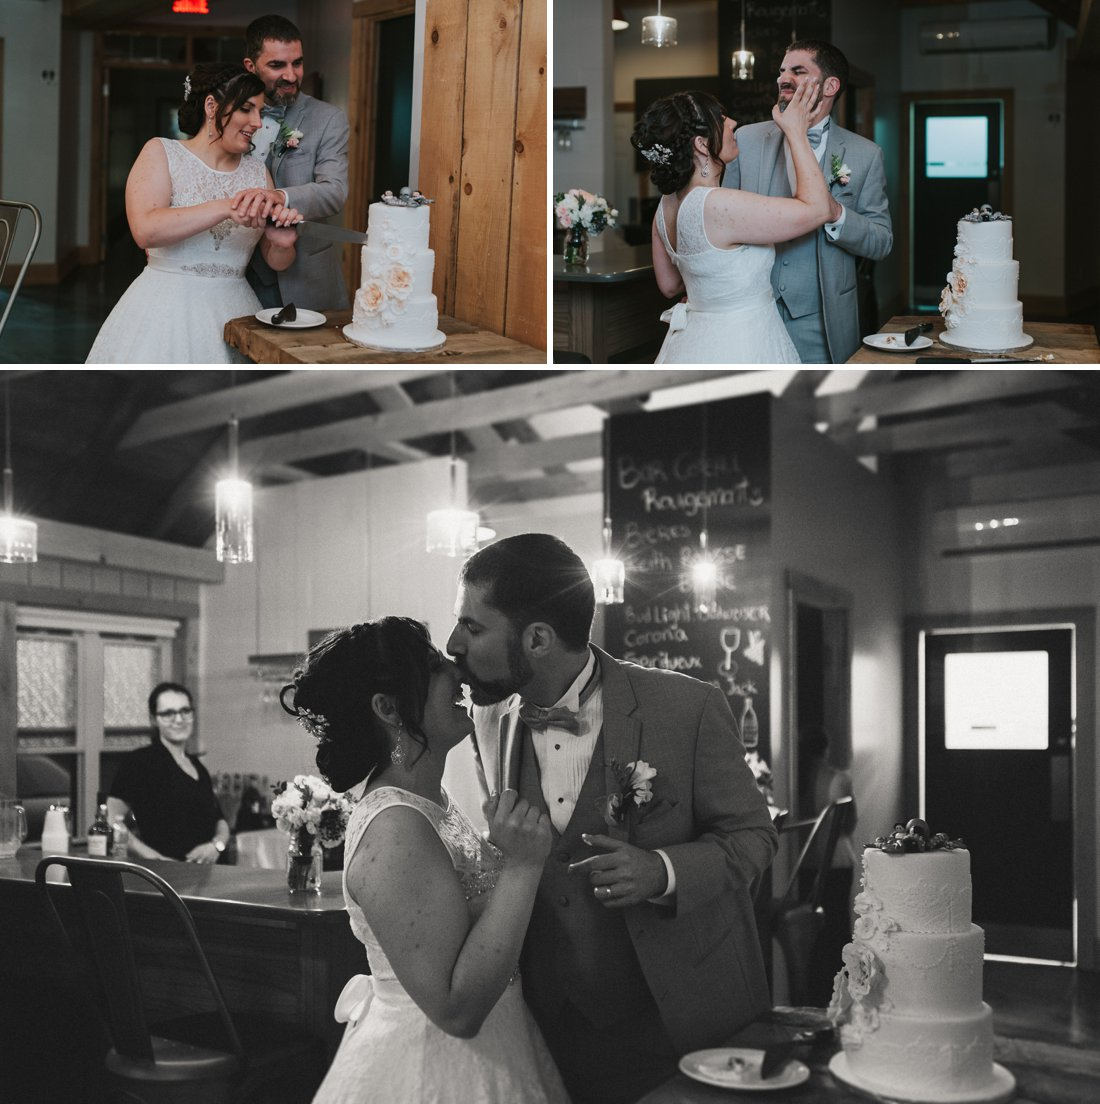 View More: http://ellaphotography.pass.us/danielle-martin-wedding